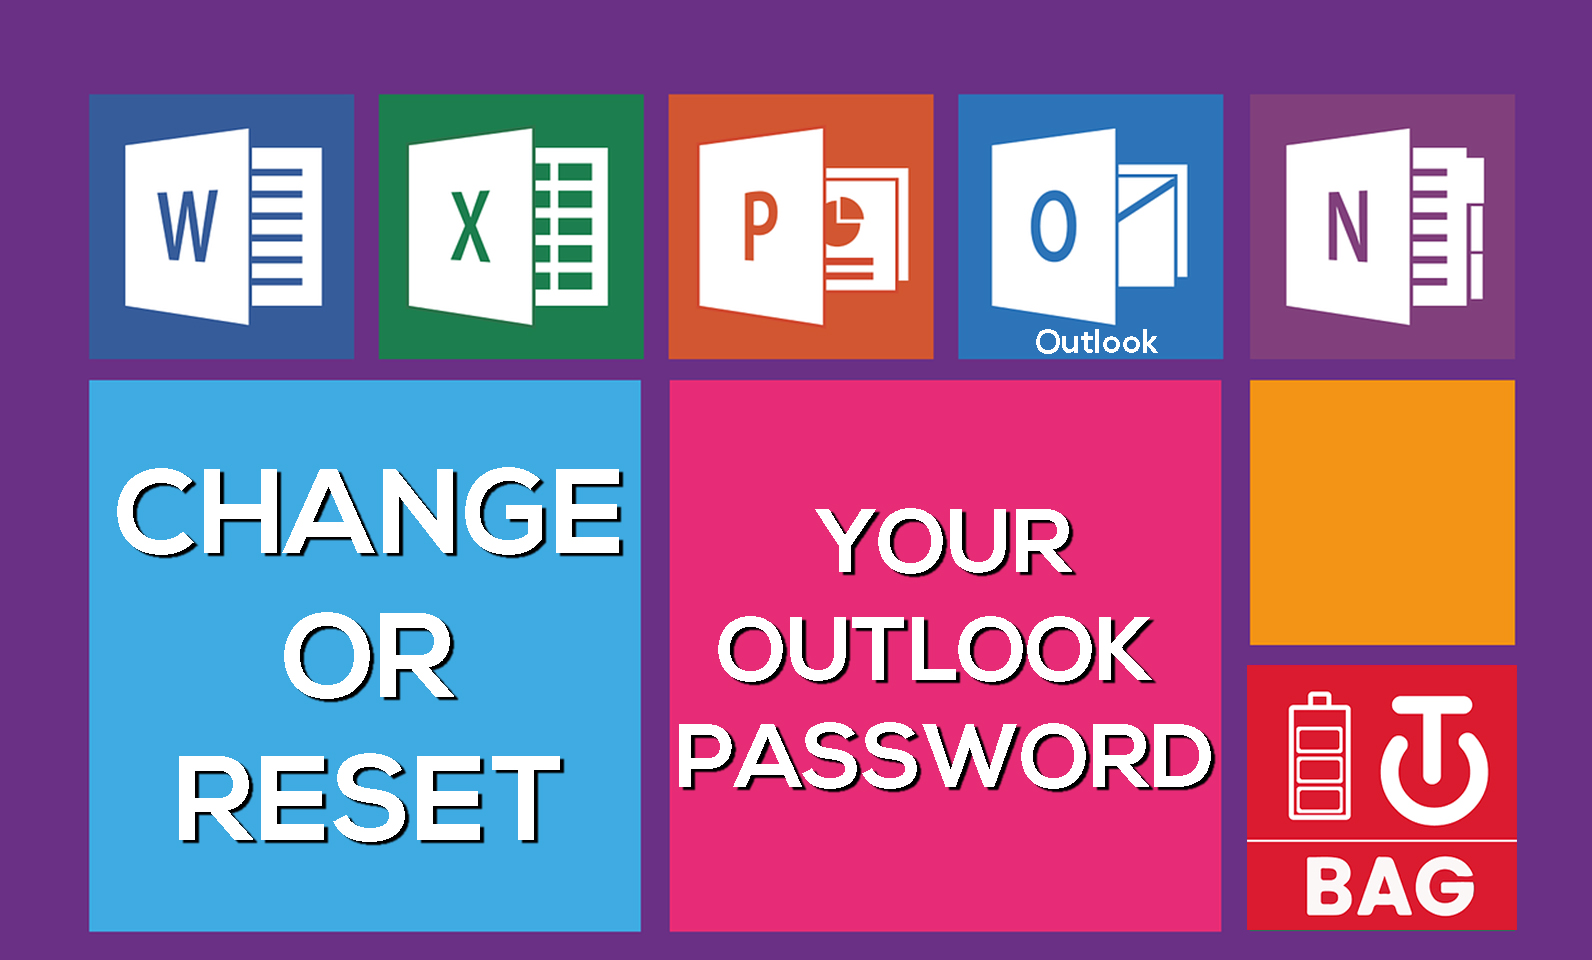 How to change or reset your Outlook password